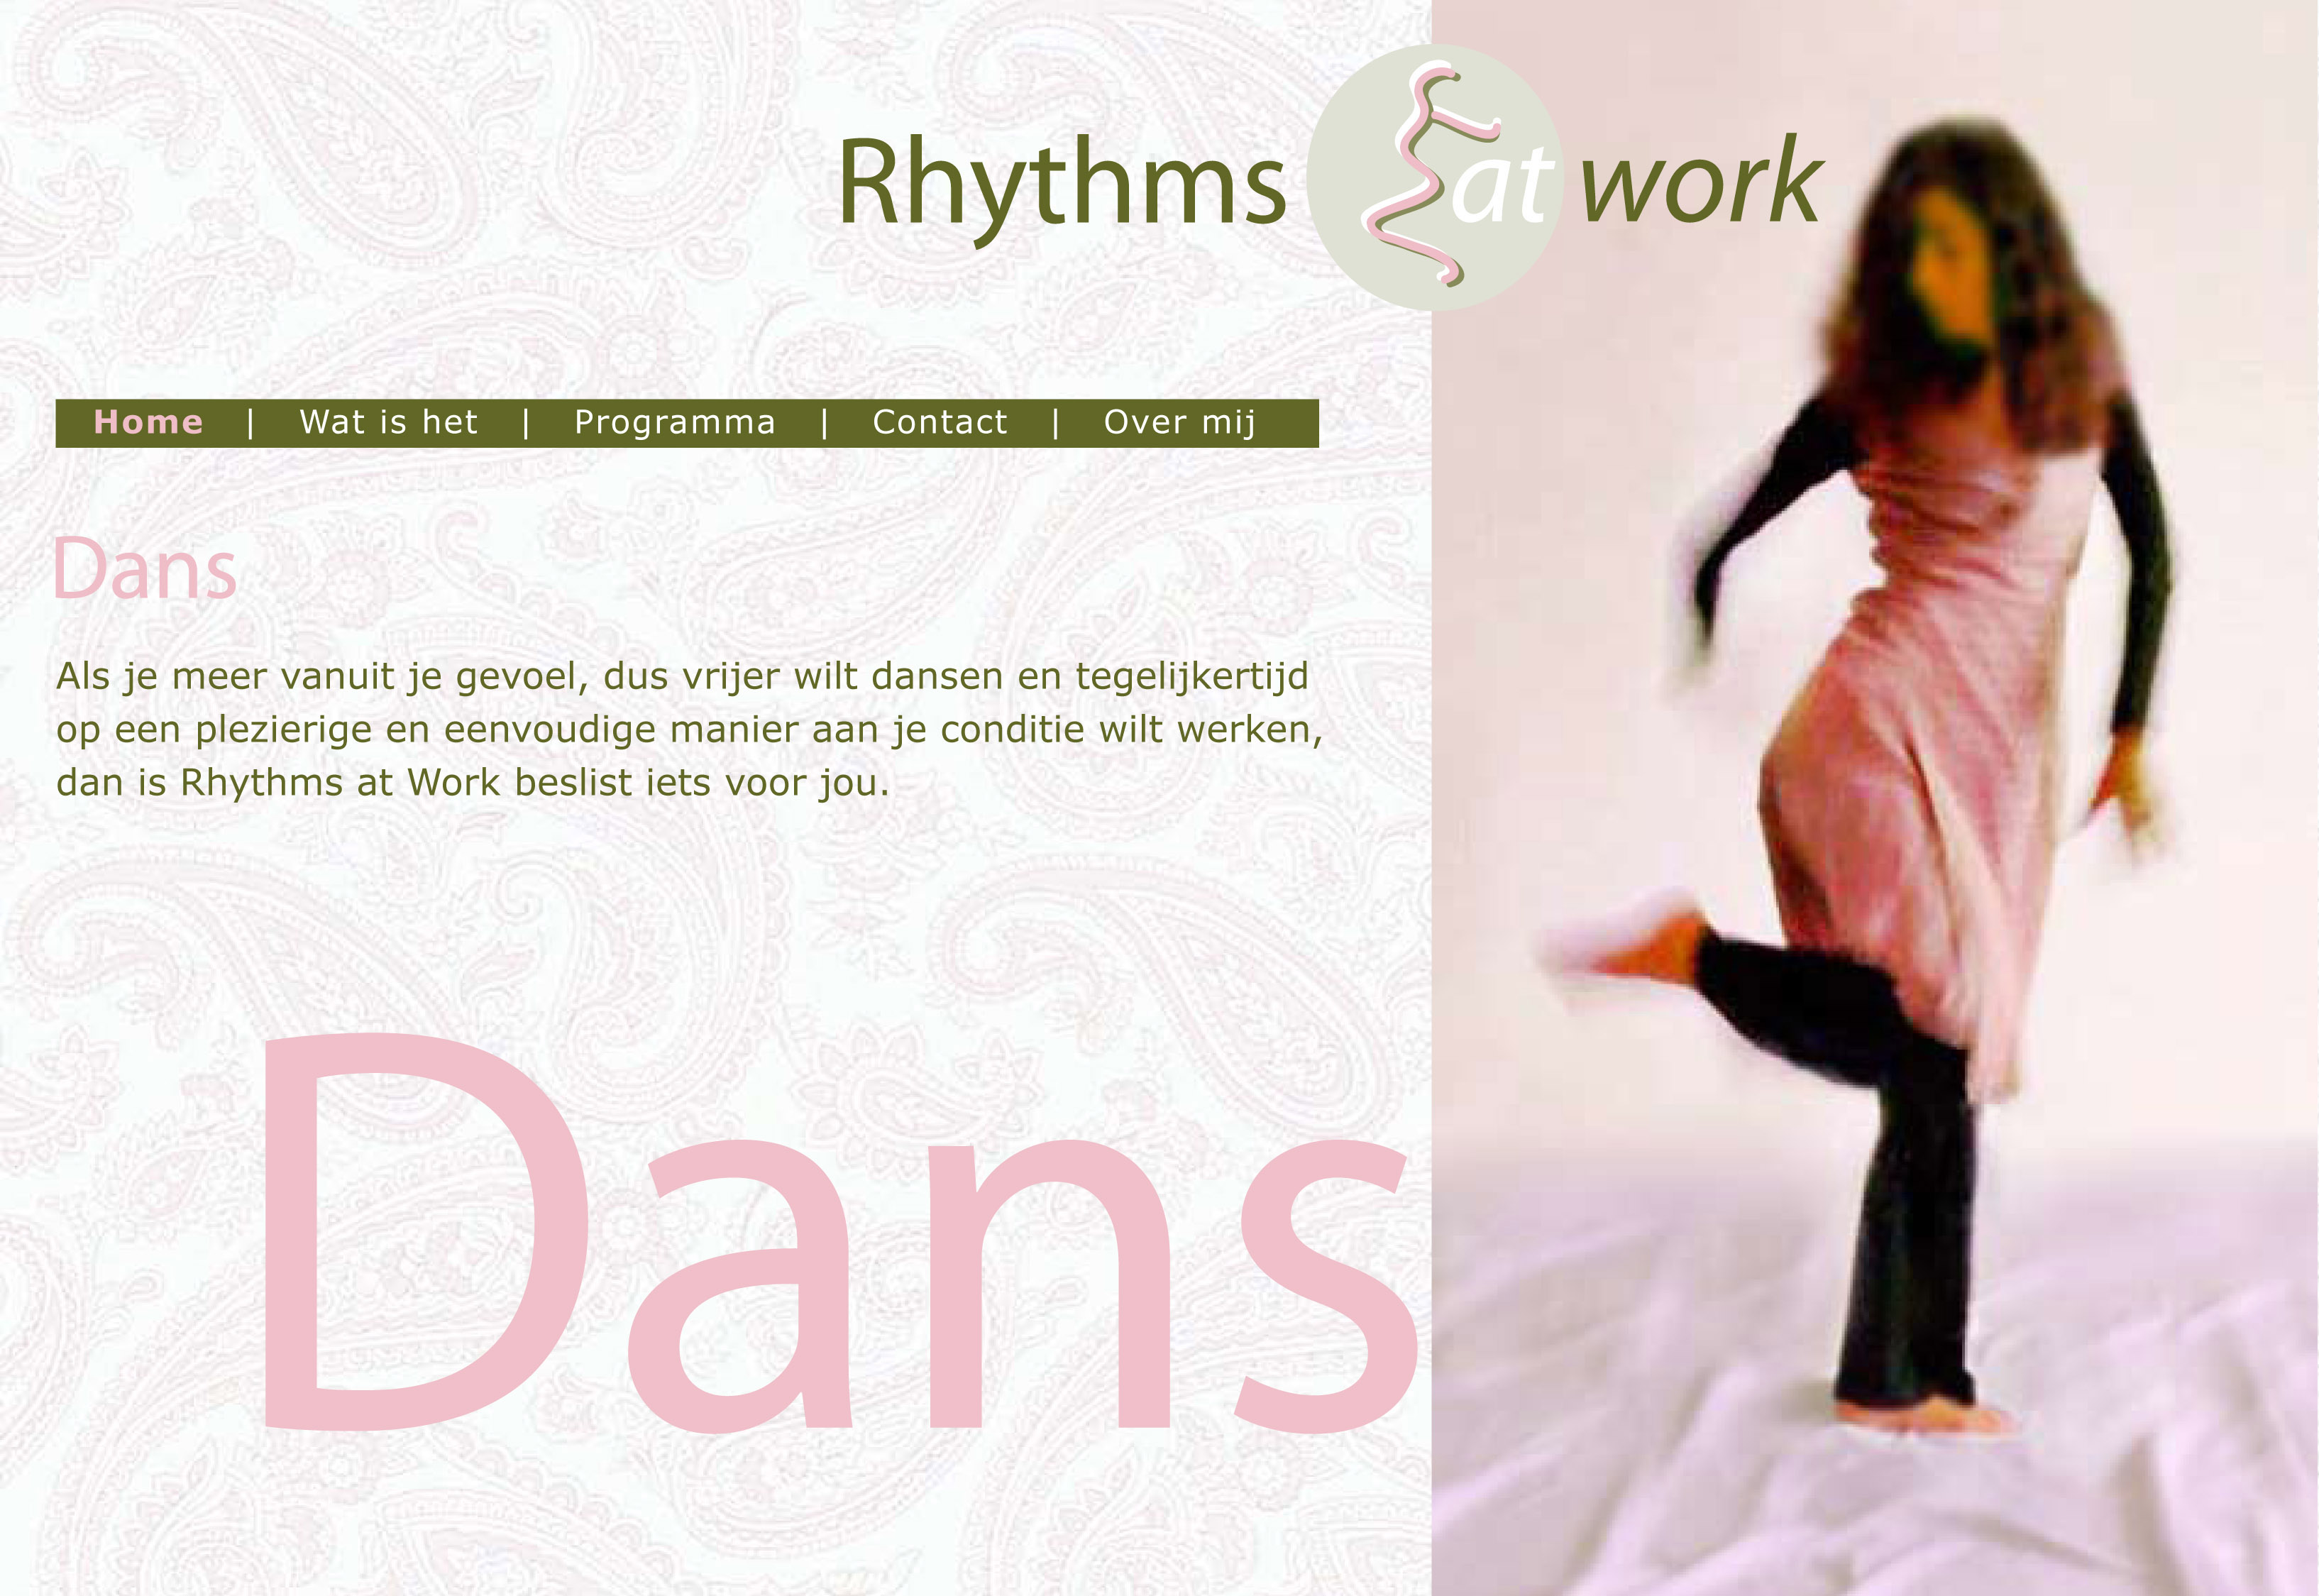 xA 1home-Rhythms at work website